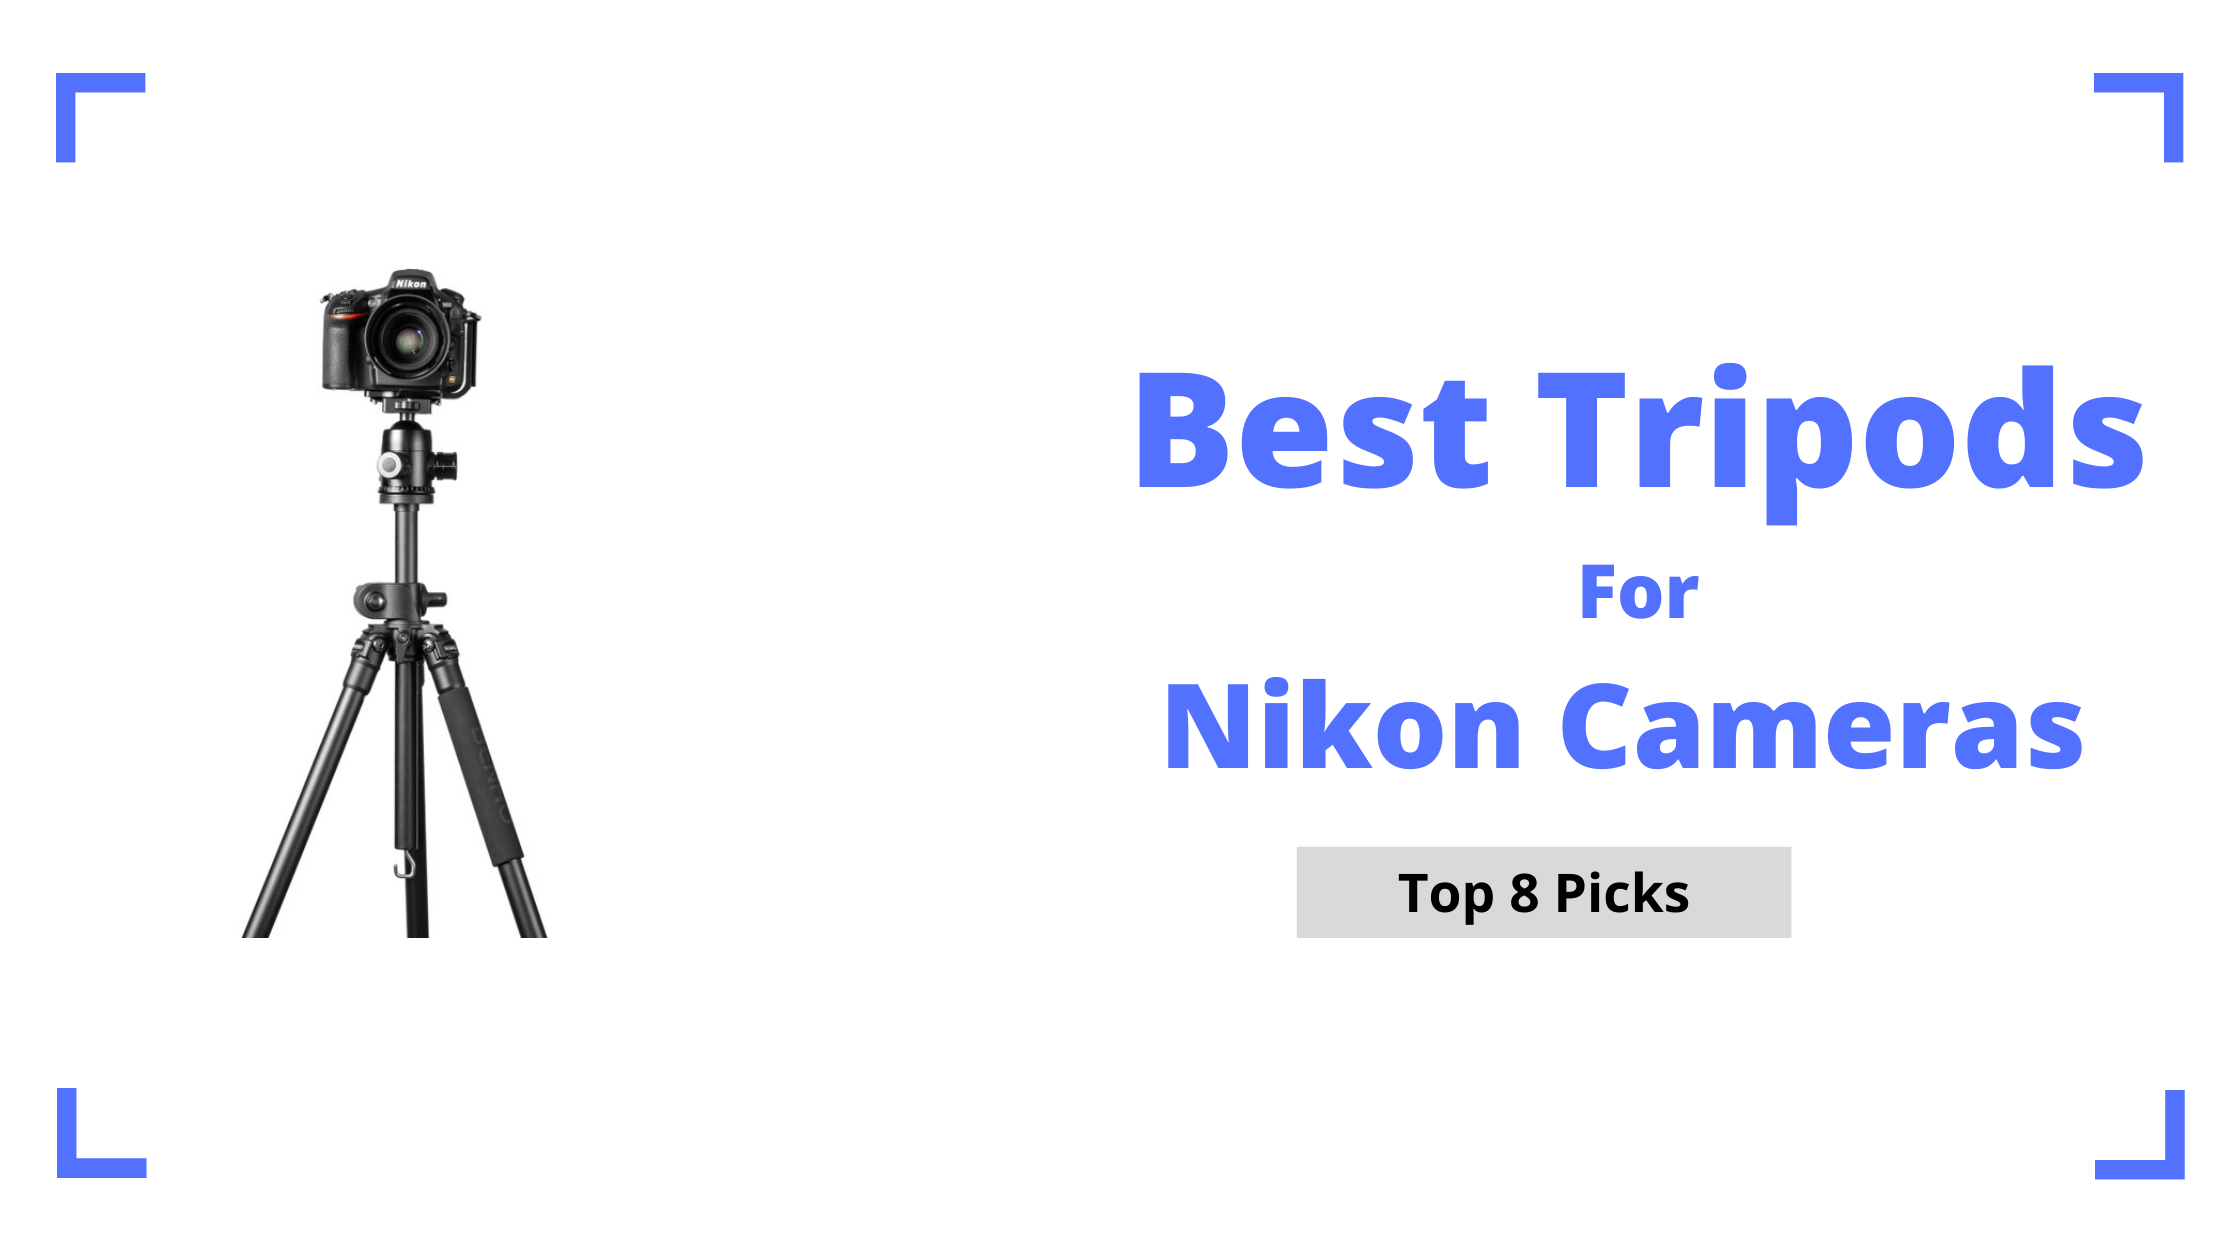 Best Tripods for Nikon